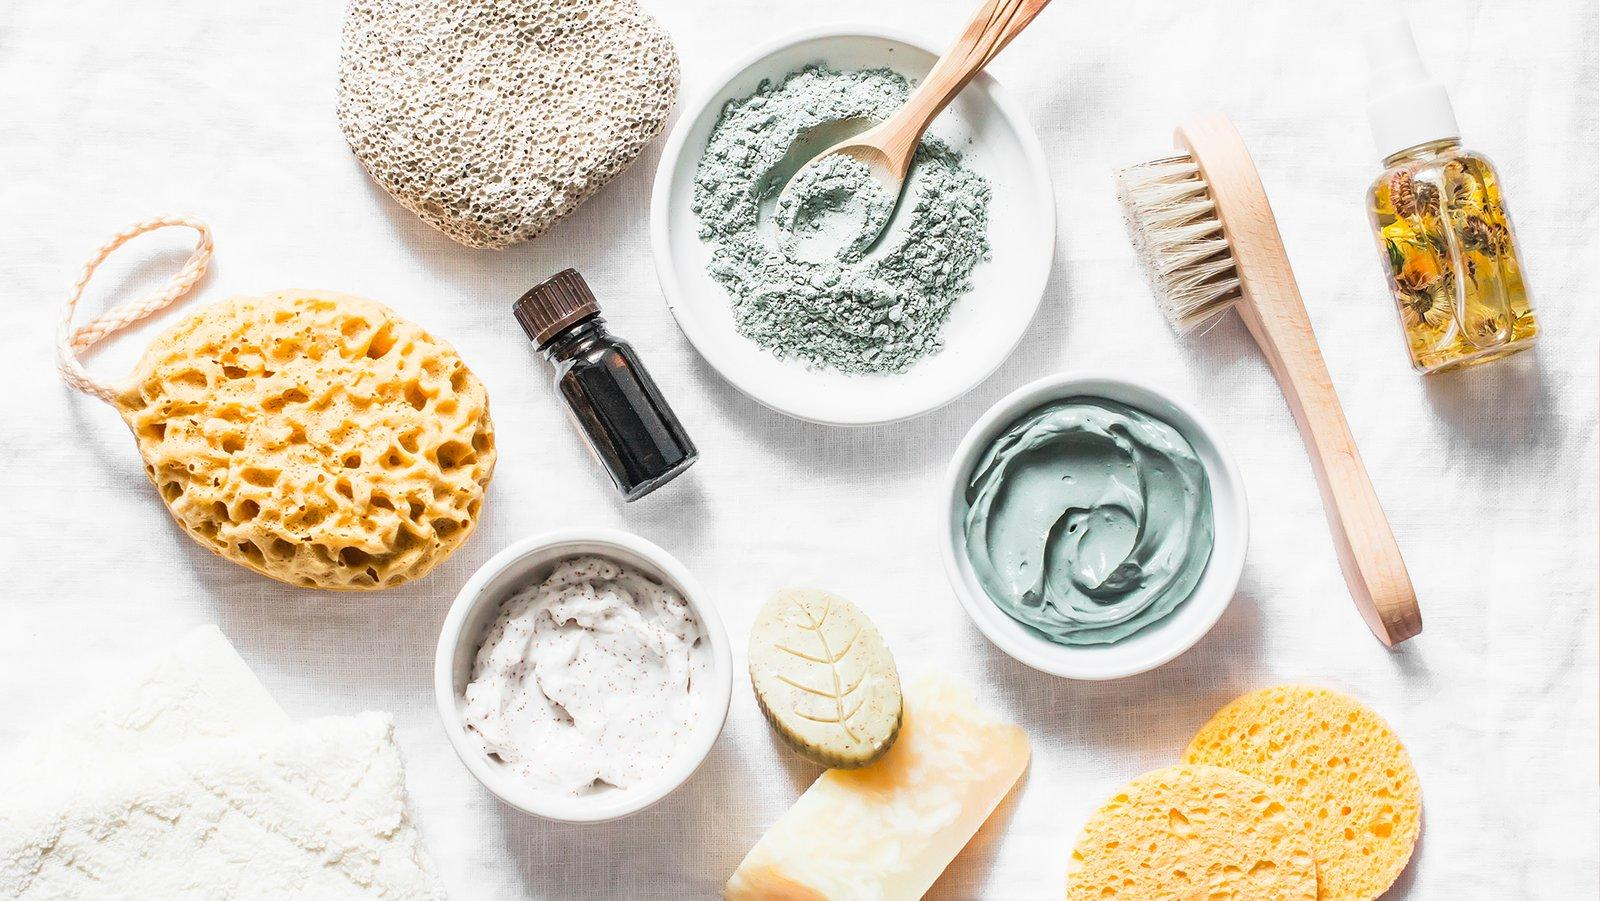 DIY Skincare Recipes | Vega (US)